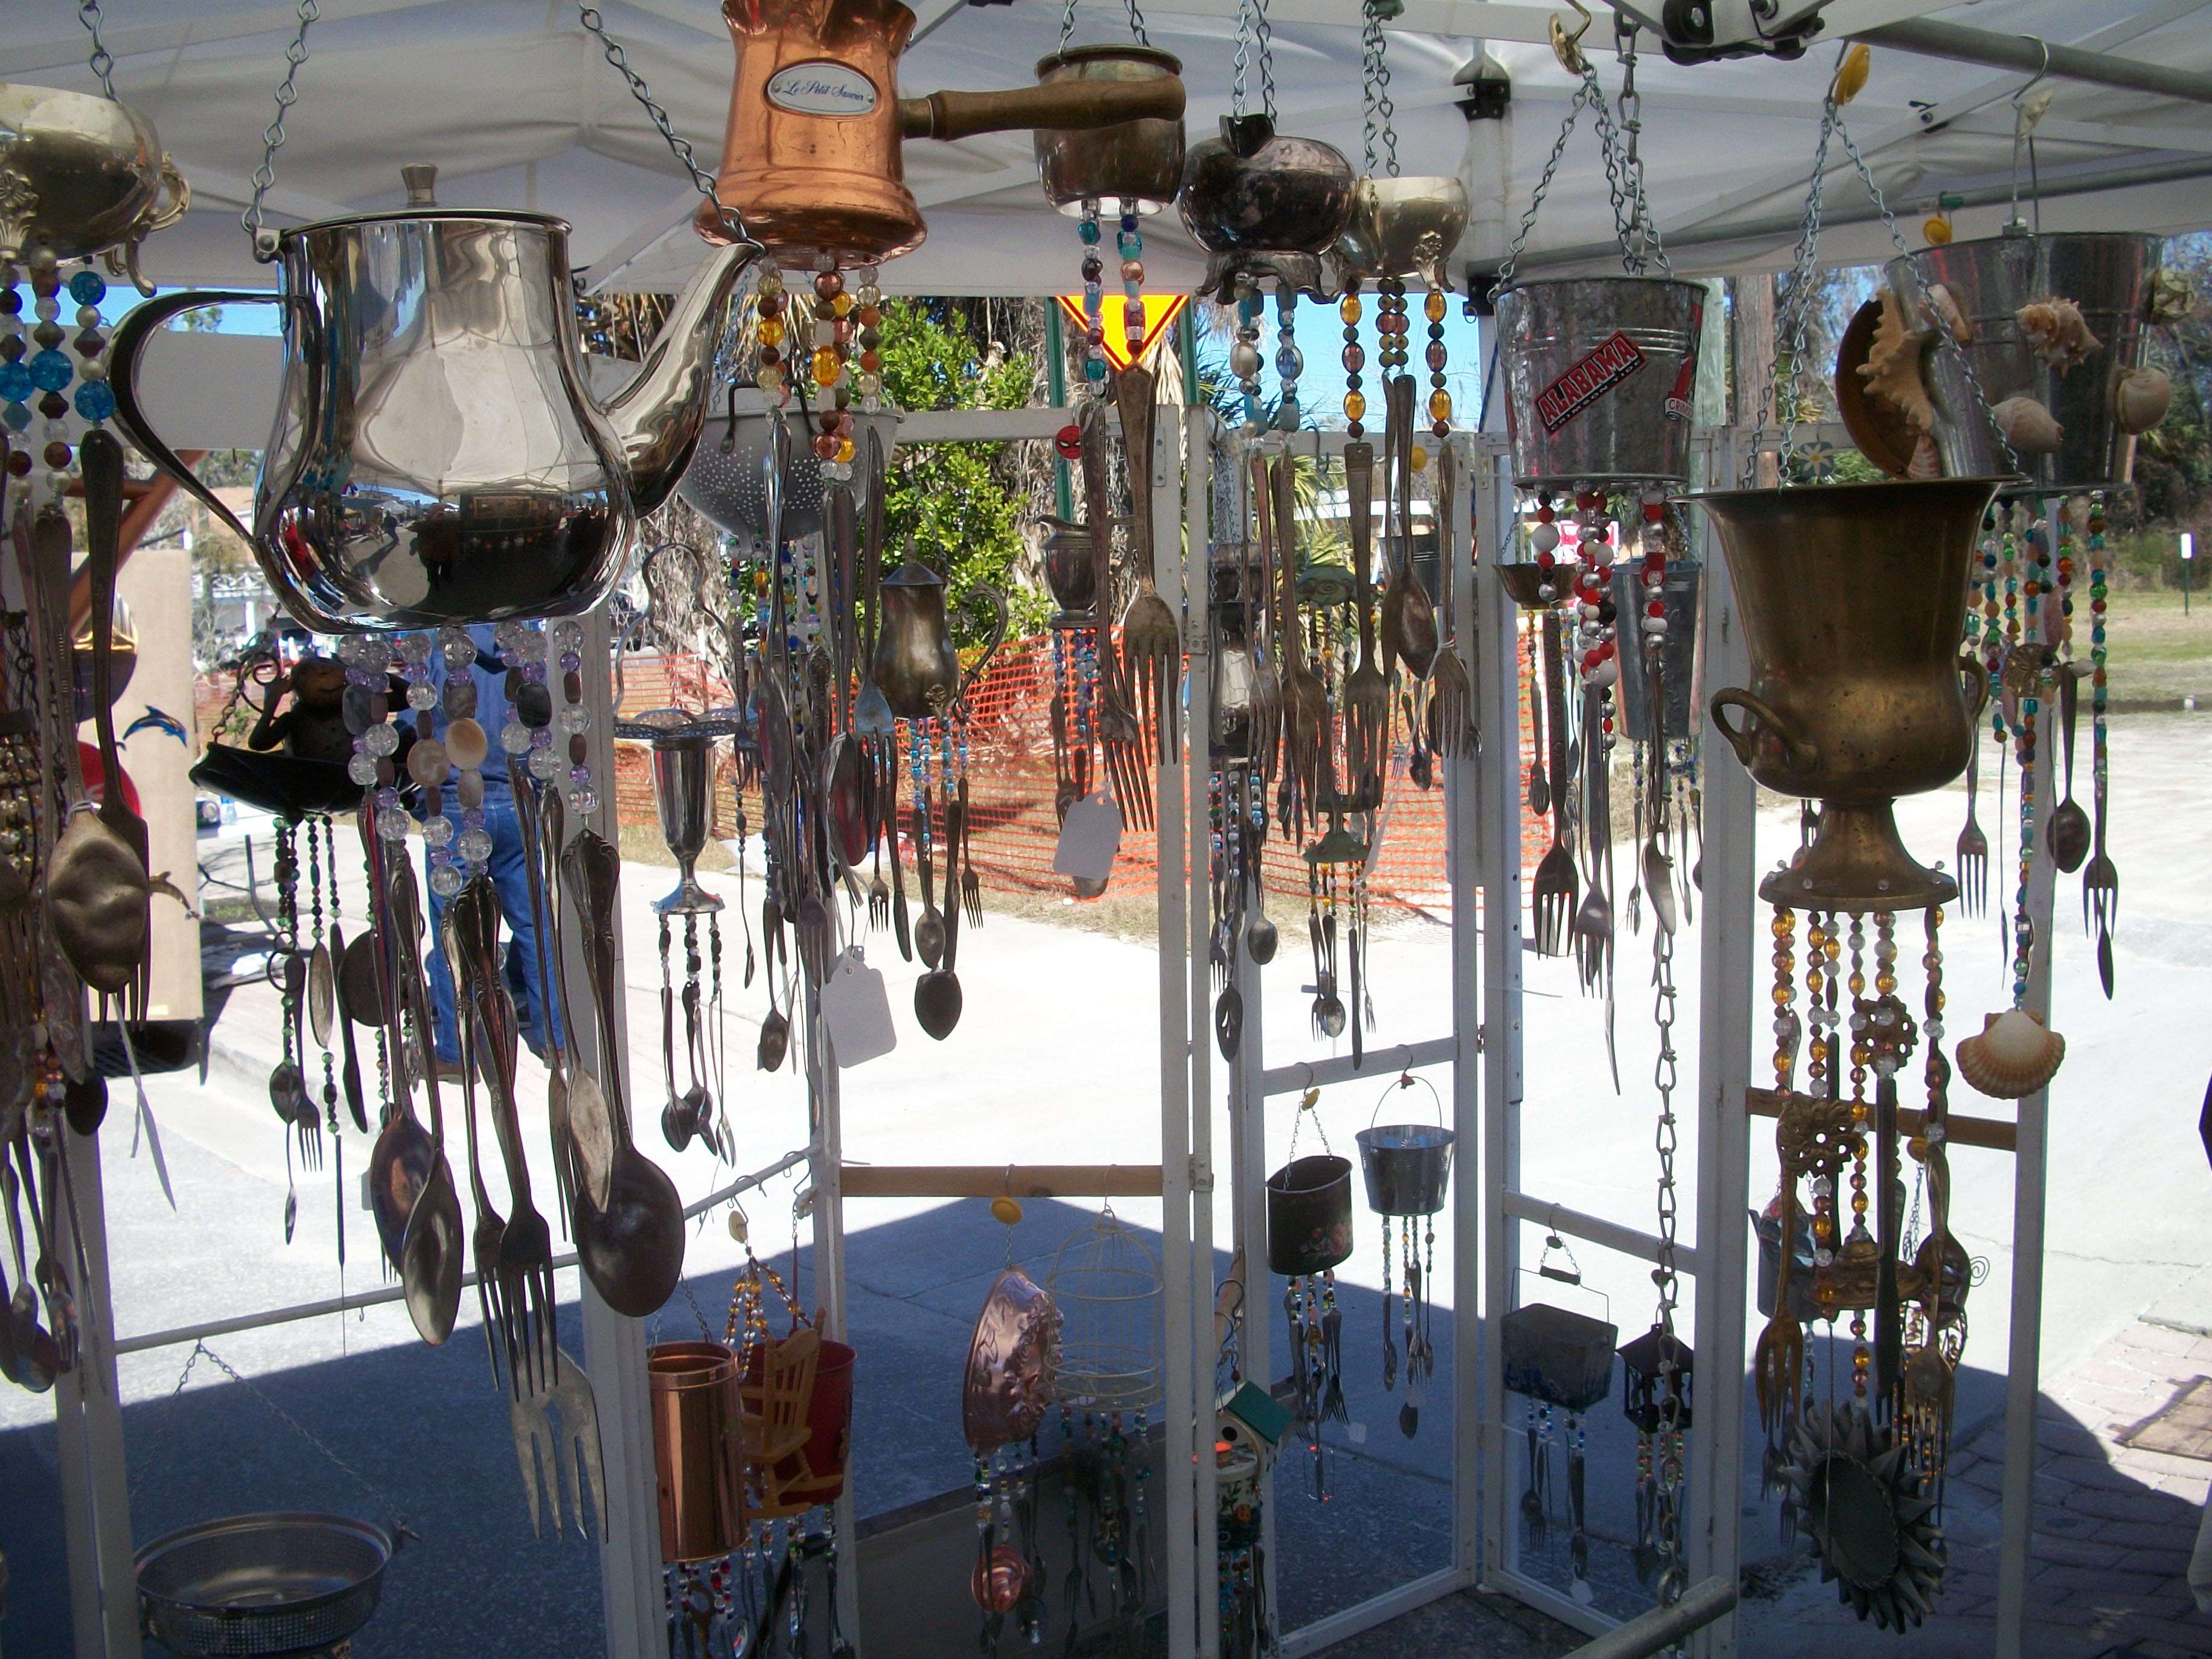 Best of chimes windchimes and home decor made from for Home decor using waste